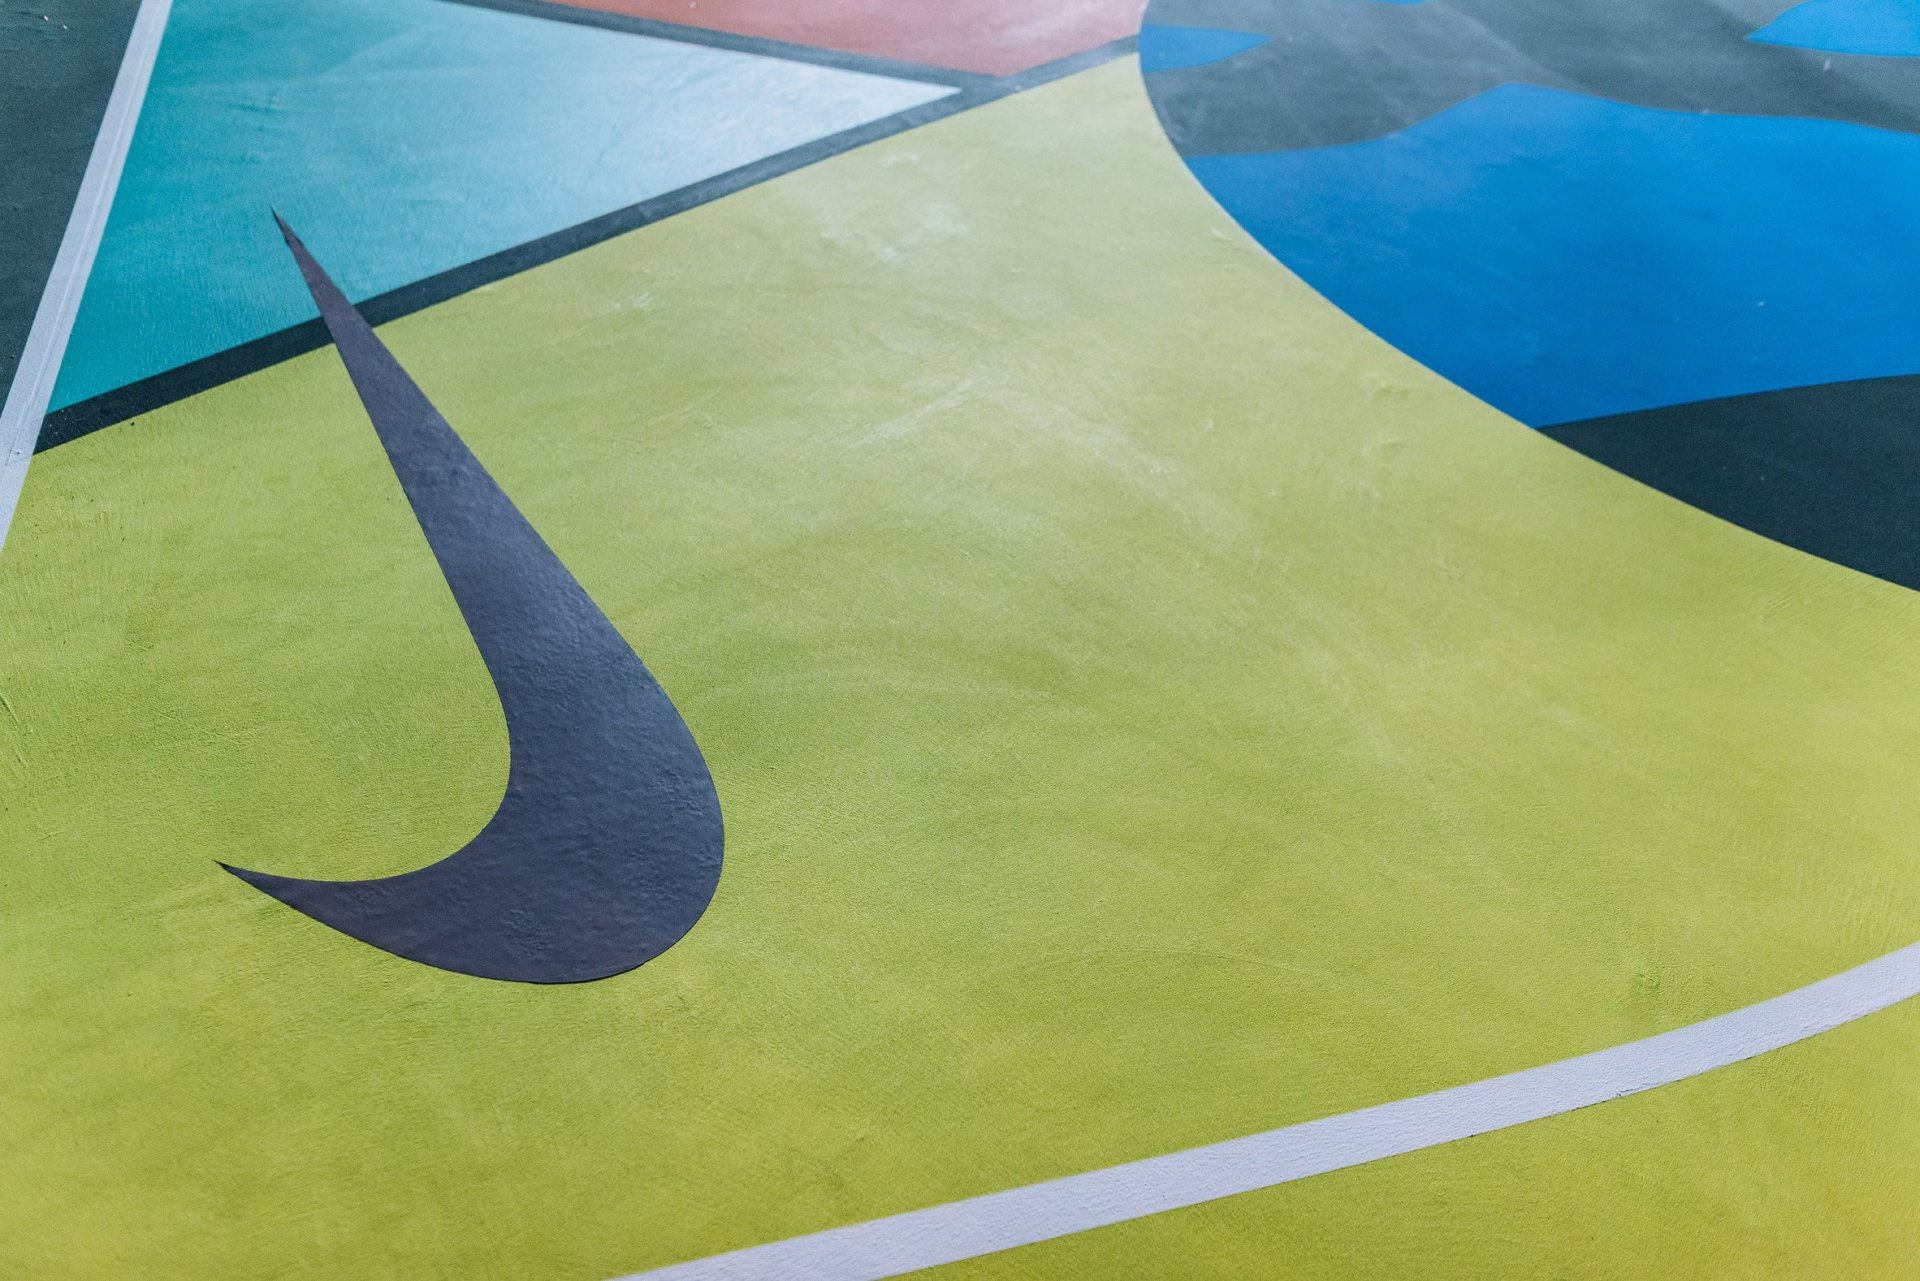 stanton-street-basketball-courts-sport-urban-design-nike-kaws-brian-donnelly-brooklyn-new-york-usa_dezeen_2364_col_3